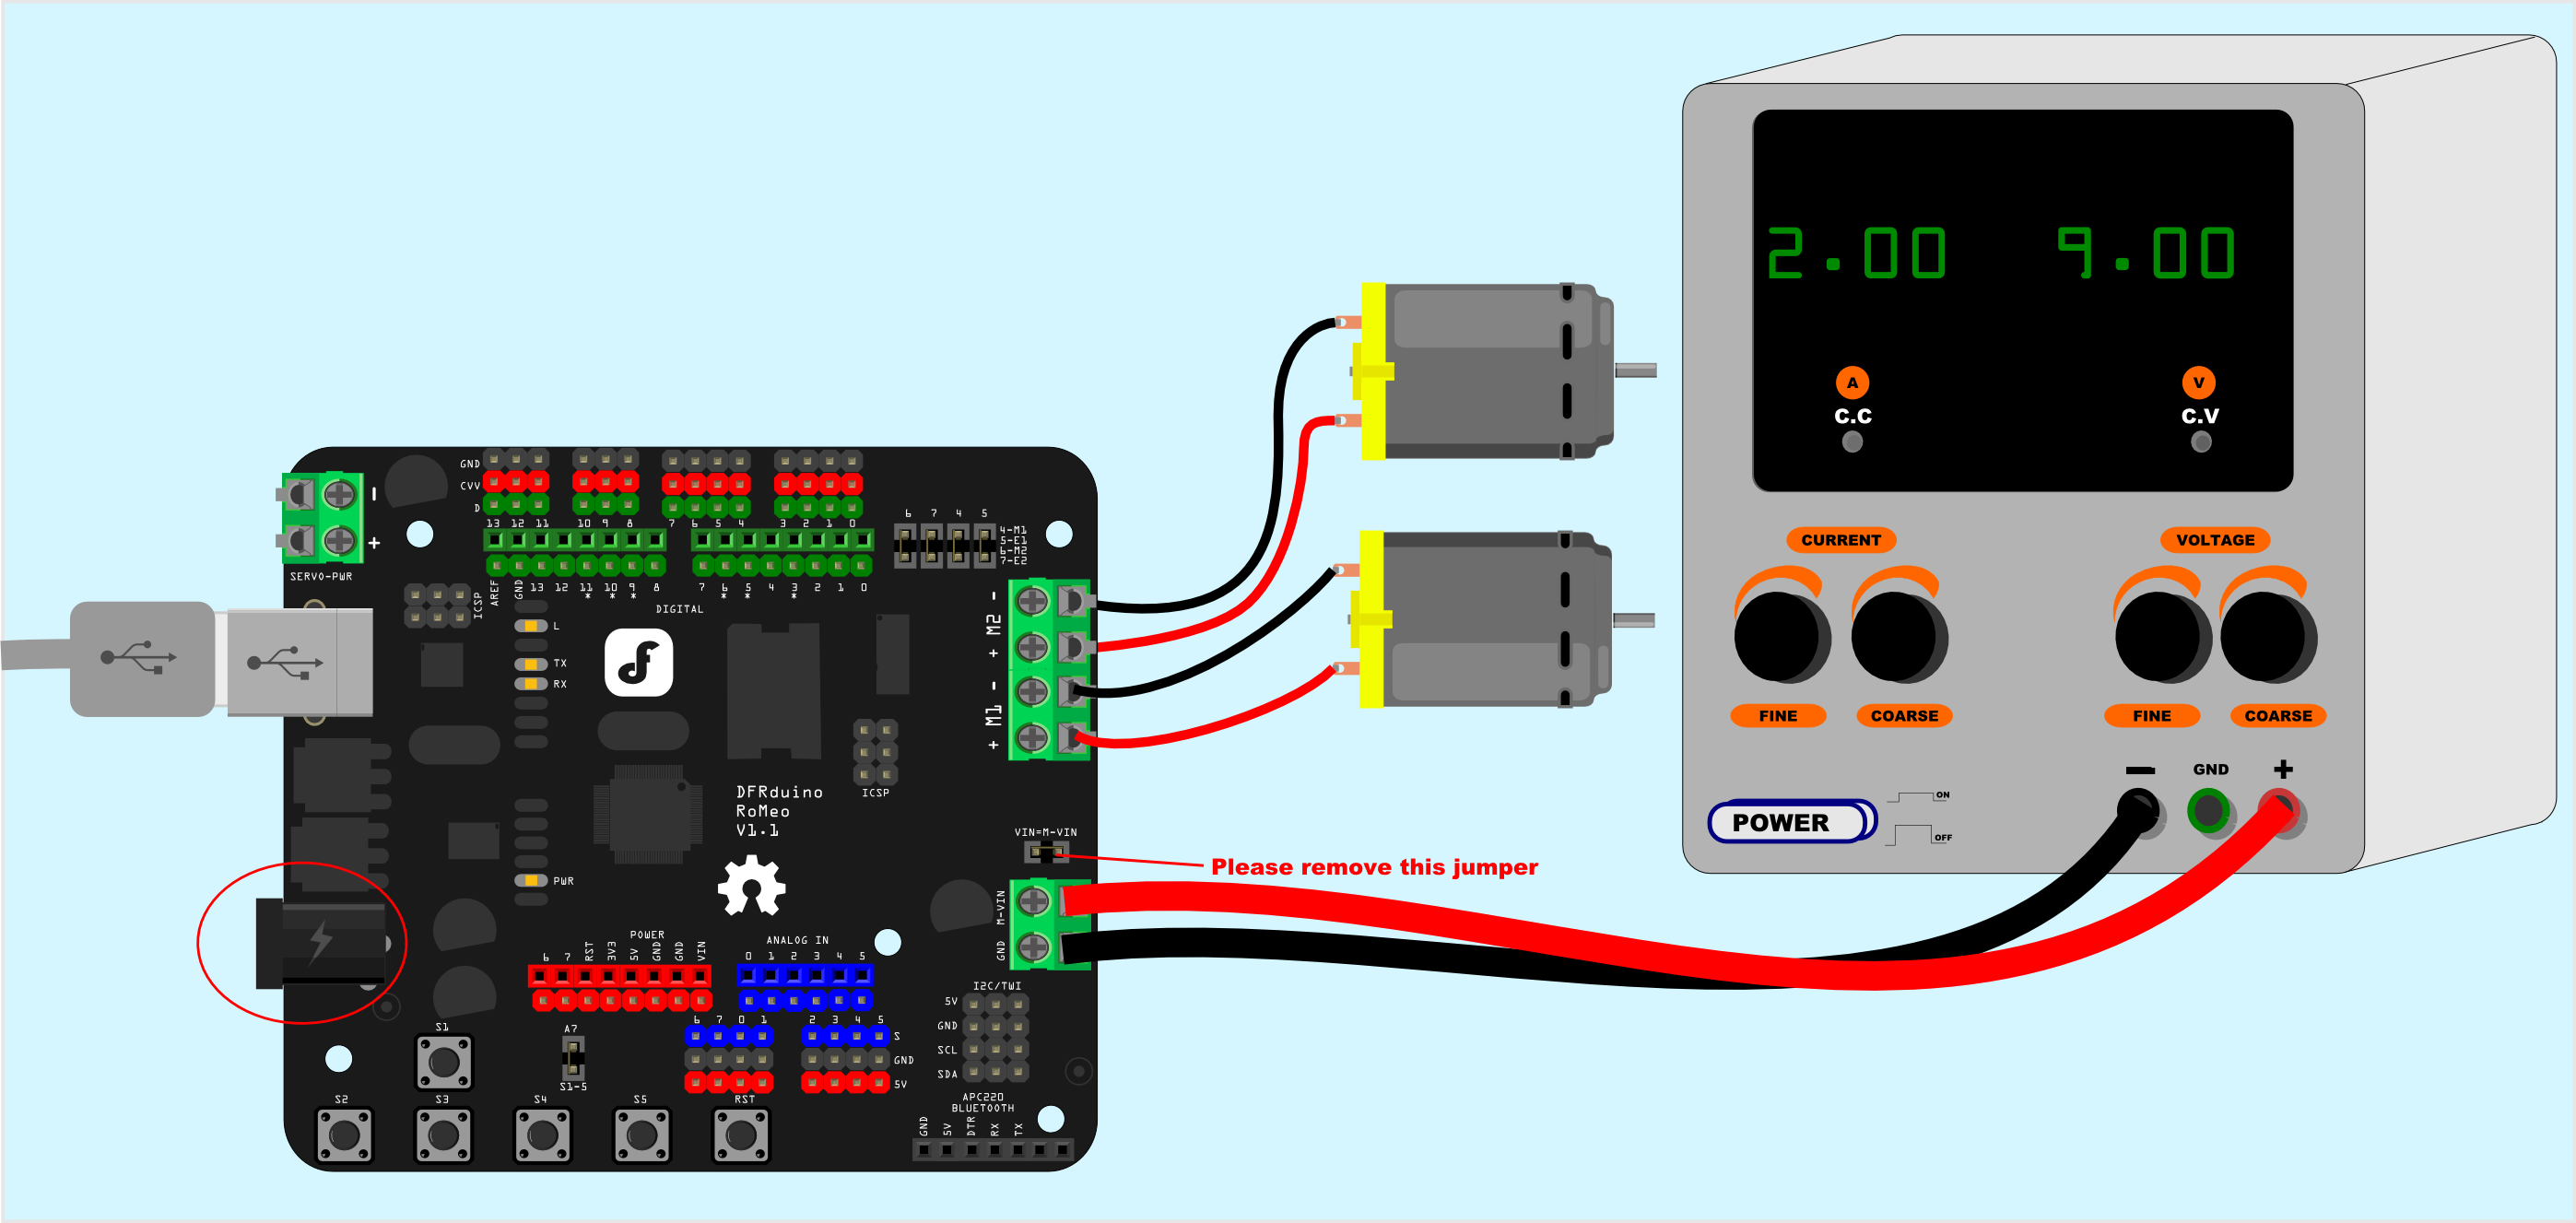 DFRduino_Romeo-All_in_one_Controller_V1.1_SKU_DFR0004_-DFRobot Dc Motor Sd Controller Schematic on